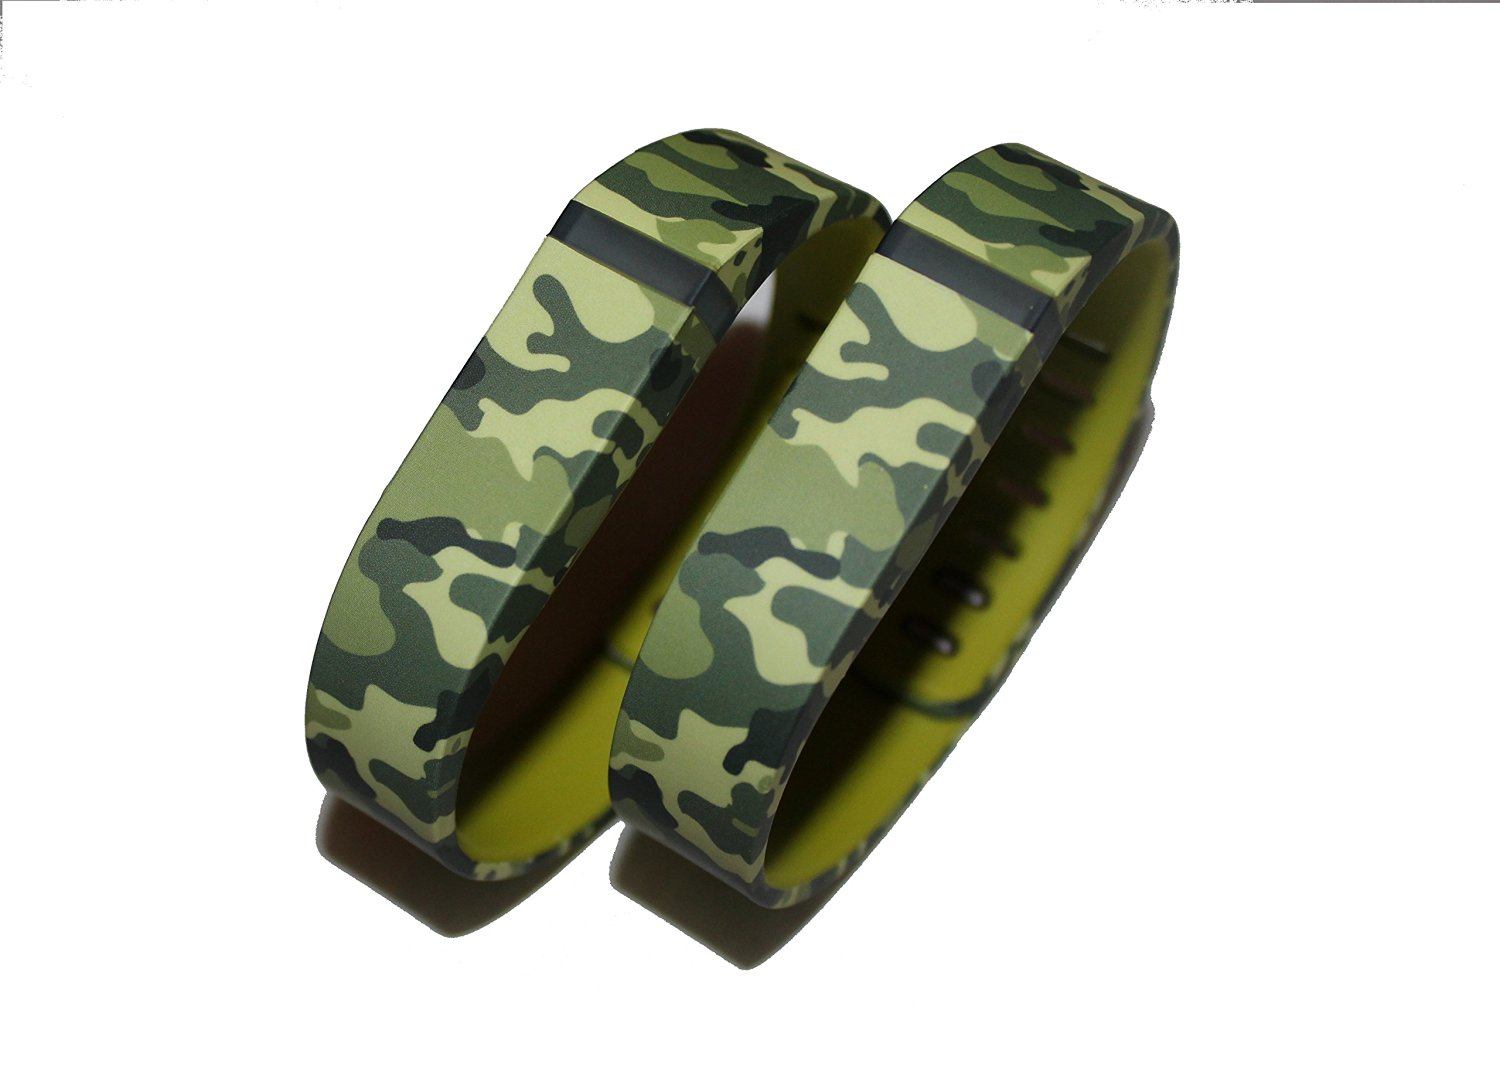 SUPTG Large 2pcs Camo Camouflage Army Wrist Bands For Fitbit Flex Bracelet (With Clasp , No Tracker) Replacement Bands Wireless Fitness Accessories Tracking Exercise Sport Activity